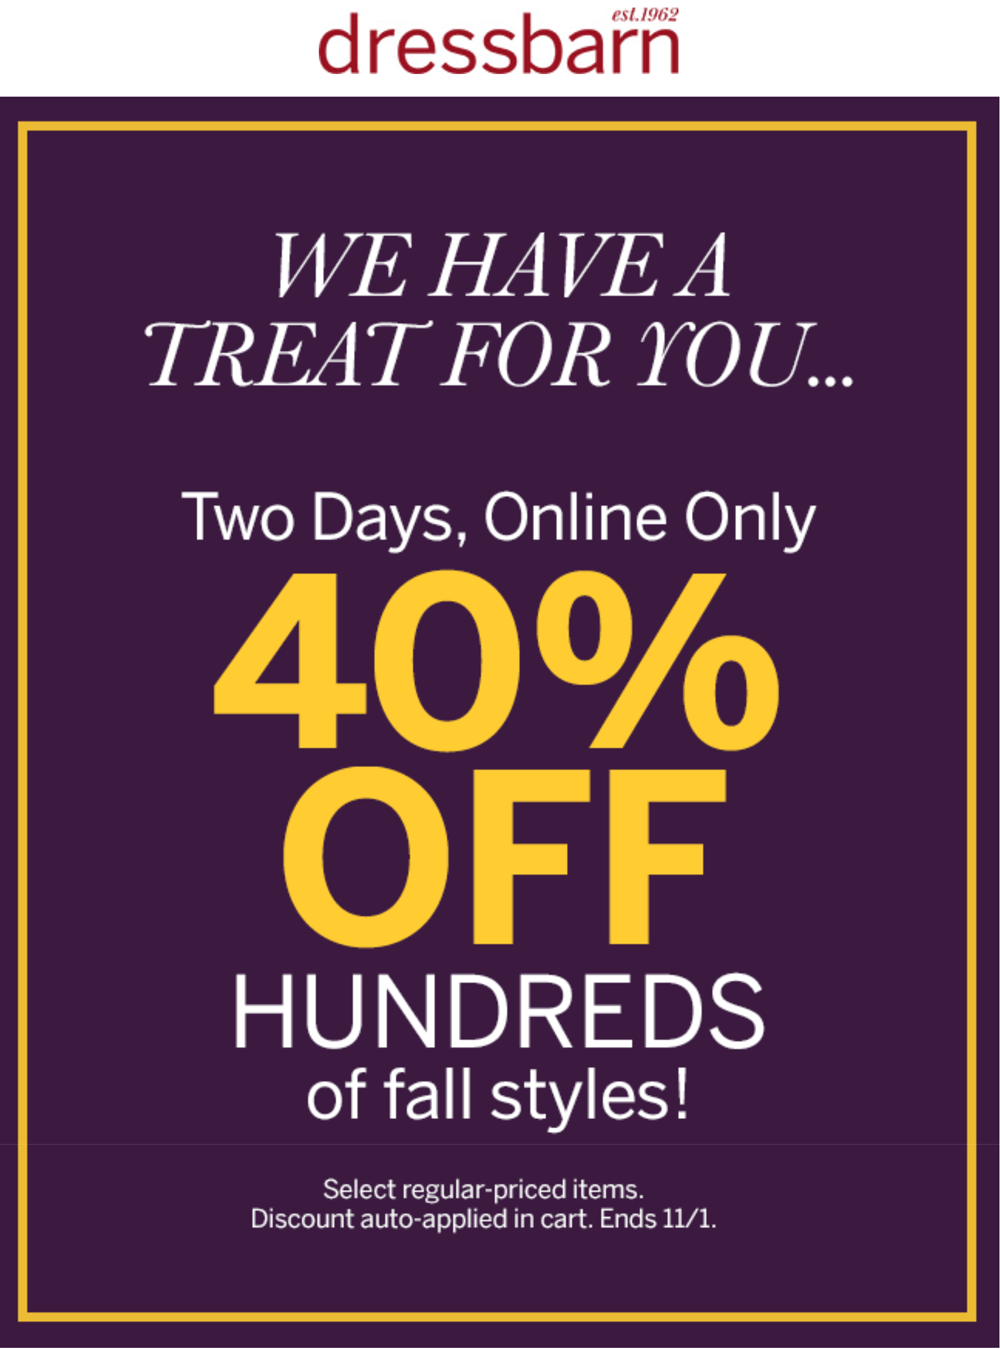 Dressbarn.com Promo Coupon 40% off fall online today at Dressbarn